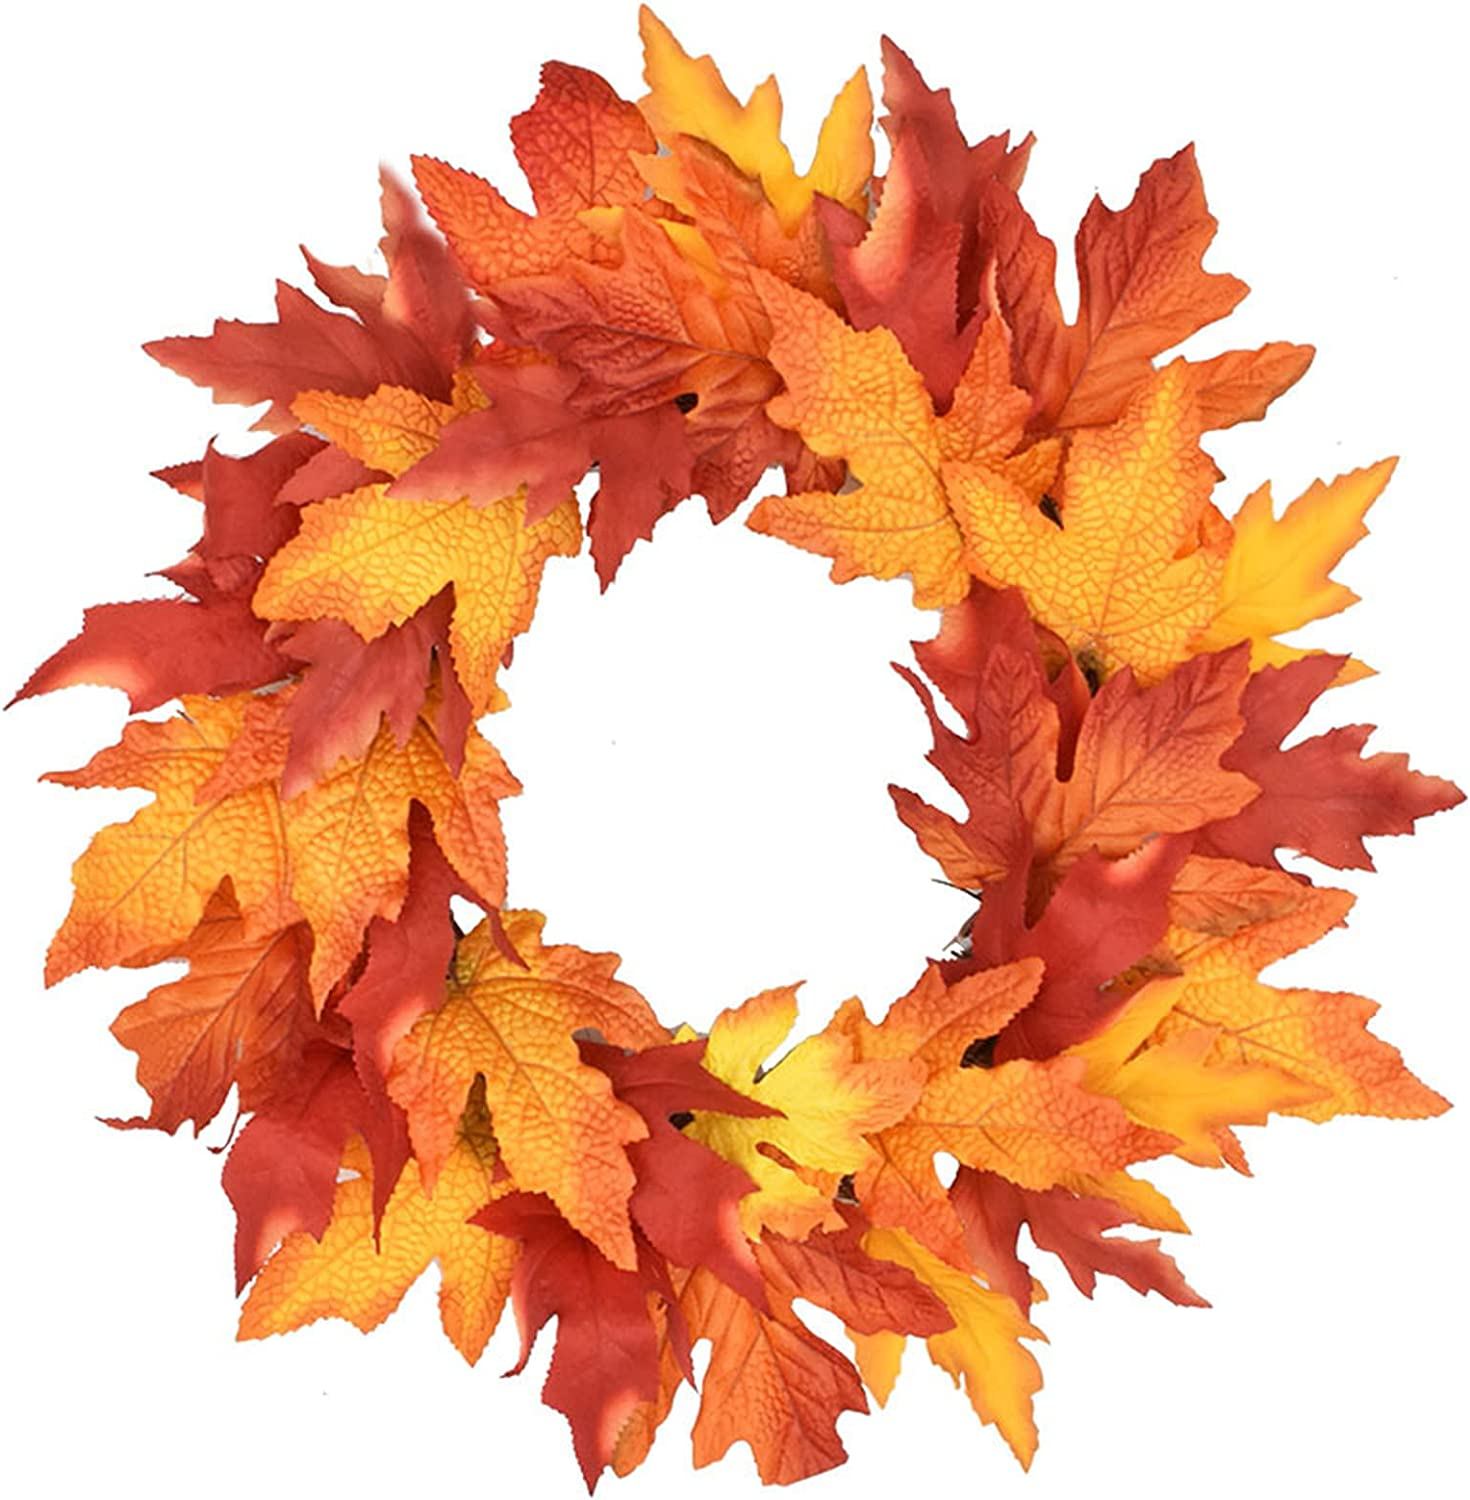 ZCFGUOI Artificial Maple Leaf Art Front Door Wreath, Gold Glitter Maple Leaf Wreath Front Door Fall Decoration for Farmhouse Home Wedding Party Indoor Outdoor Wall Decor